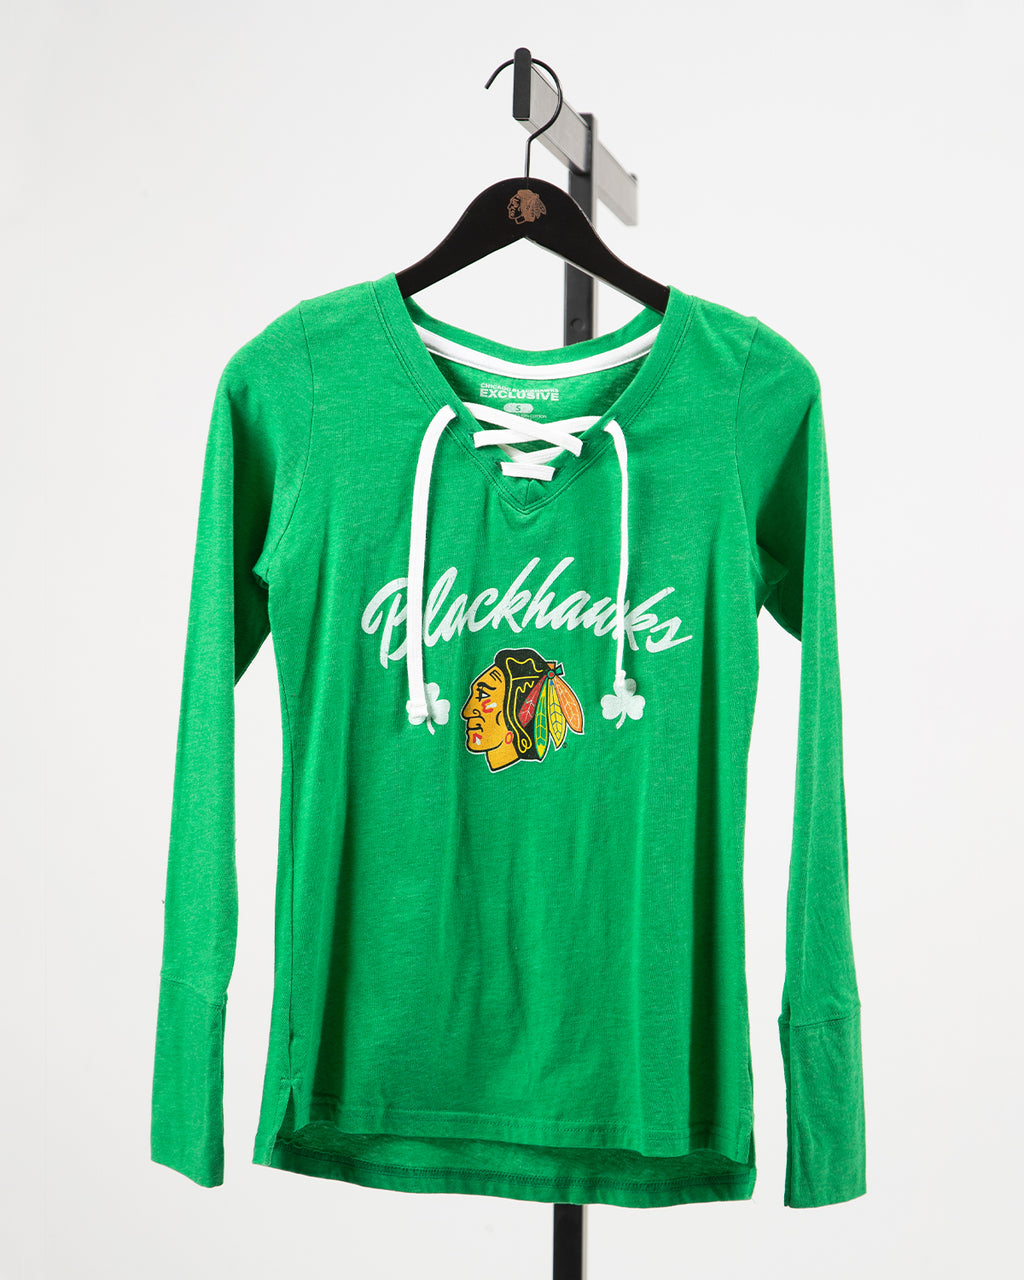 Ladies Beantown St. Patrick's Day Green Long Sleeve